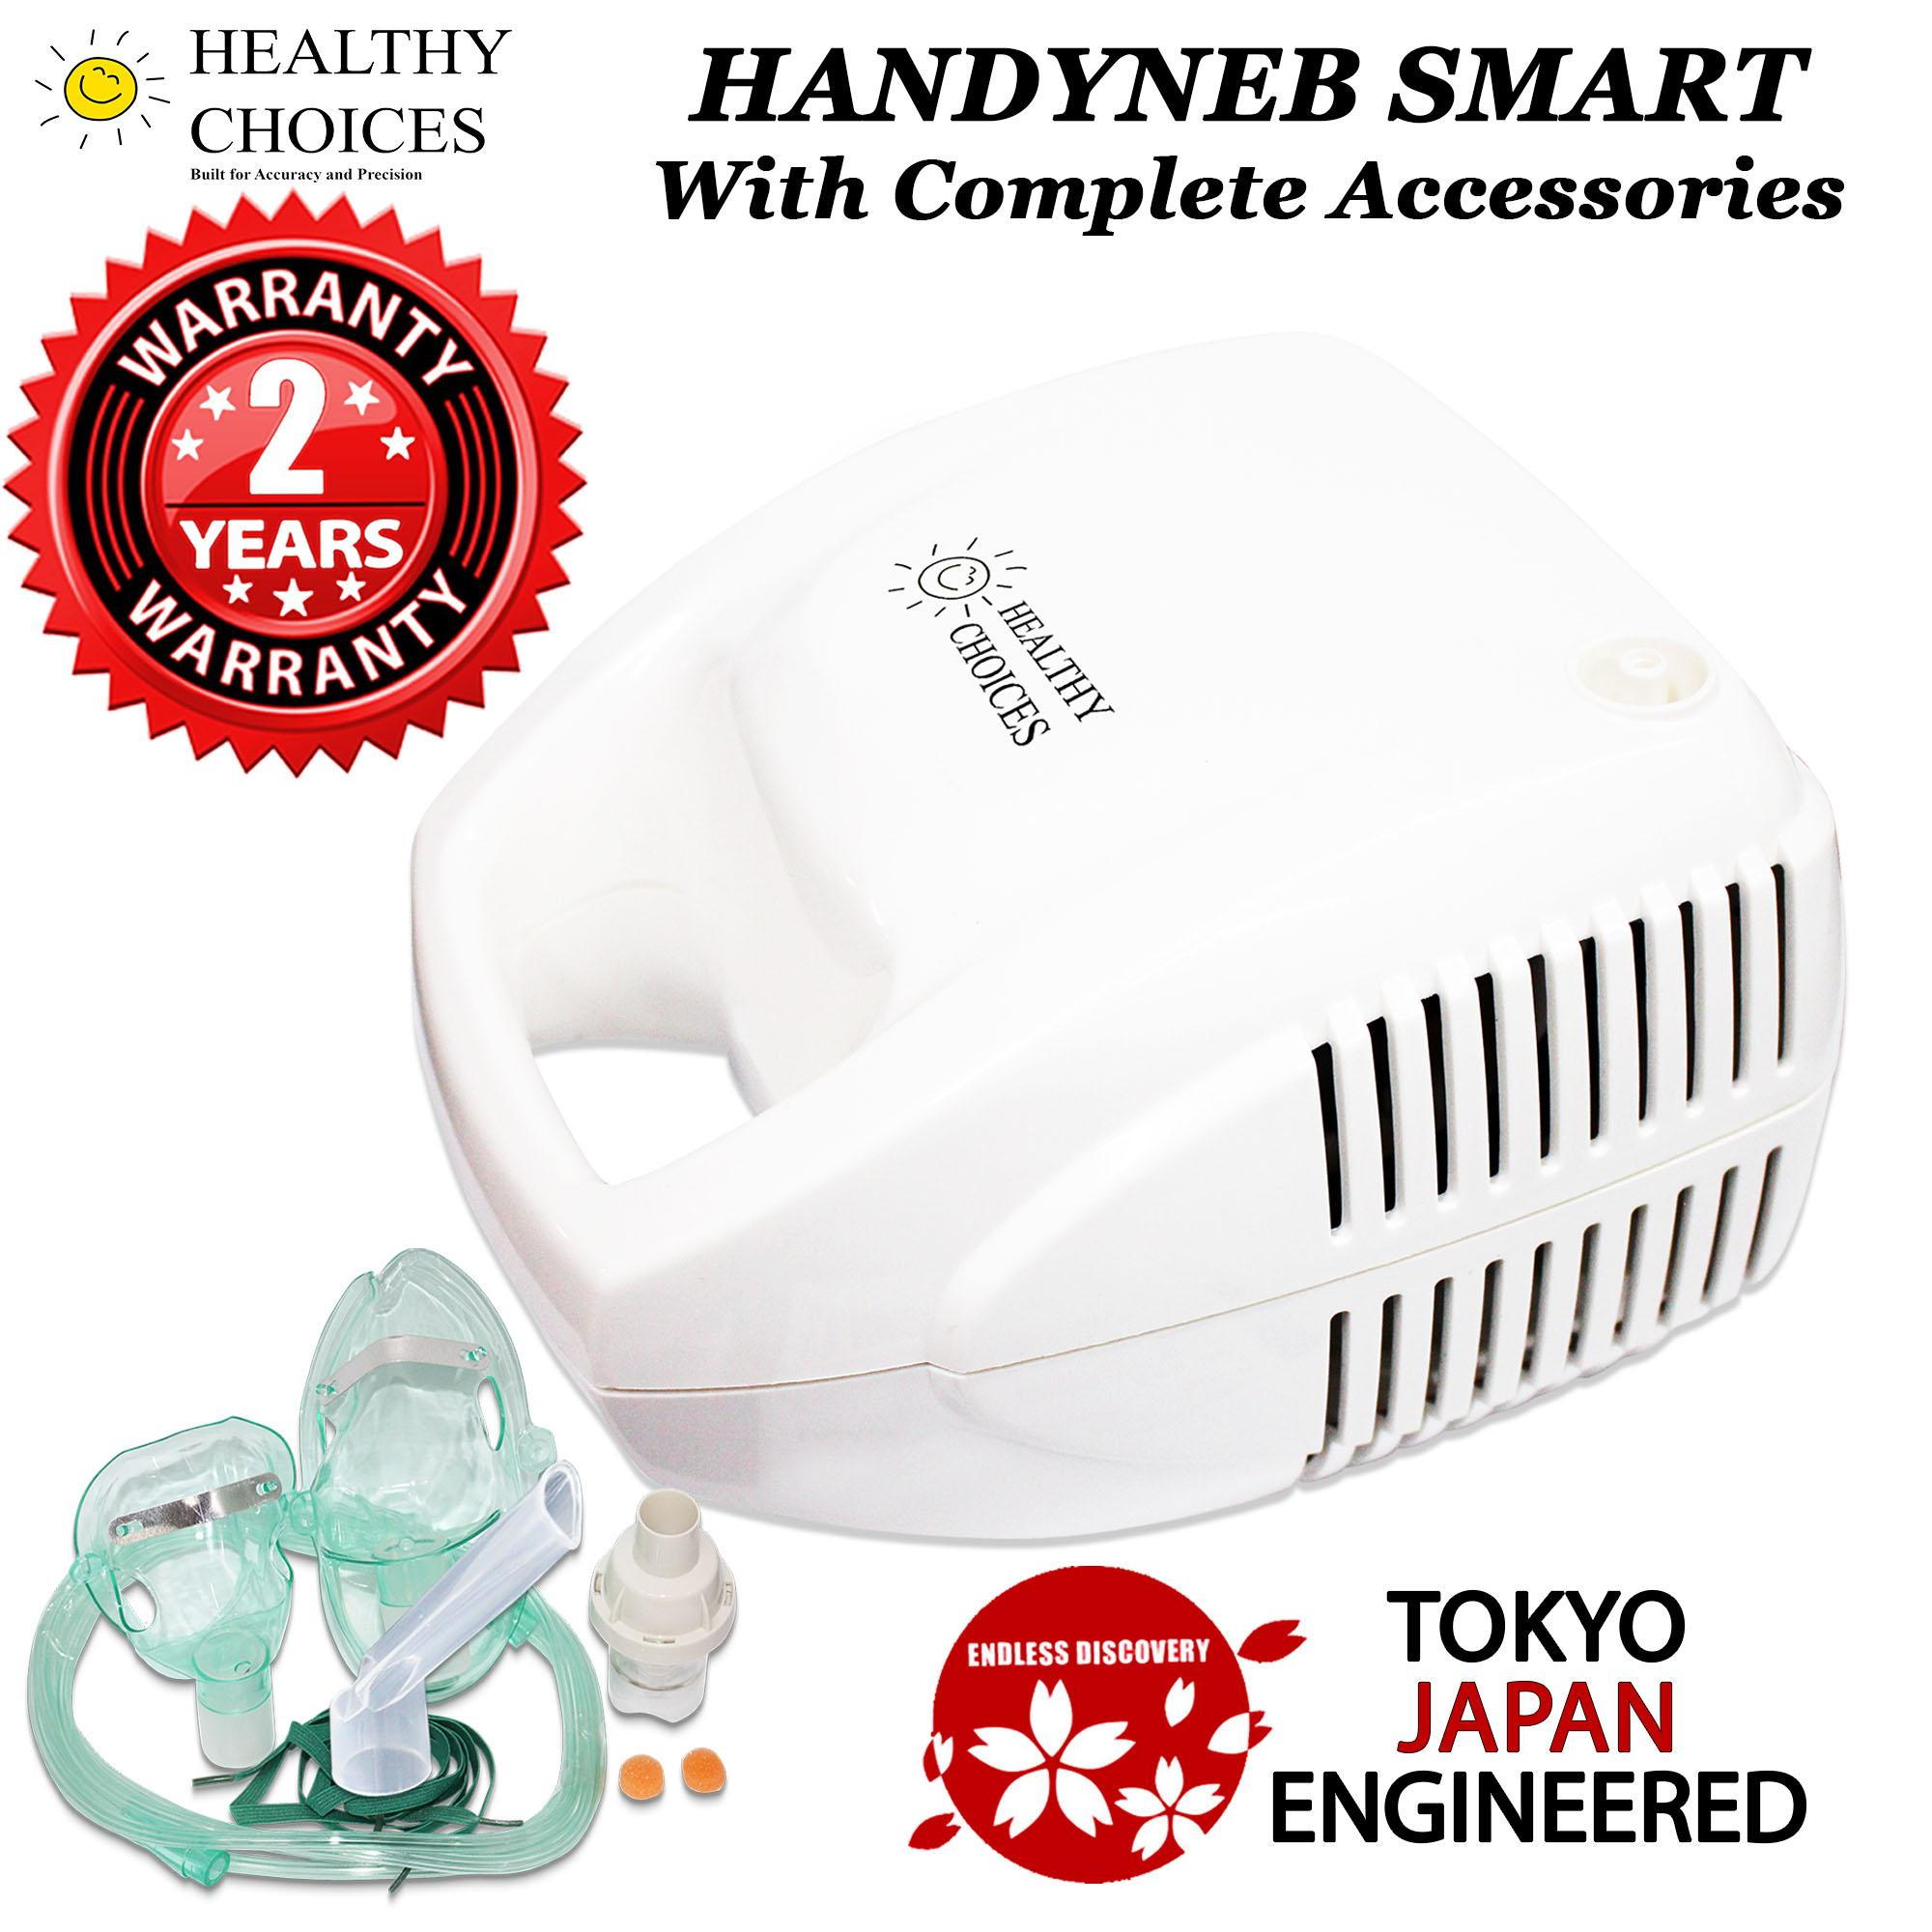 Healthy Choices Handyneb Smart Nebulizer W/ Complete Accessories - 2 Years Warranty By The Healthy Choices.